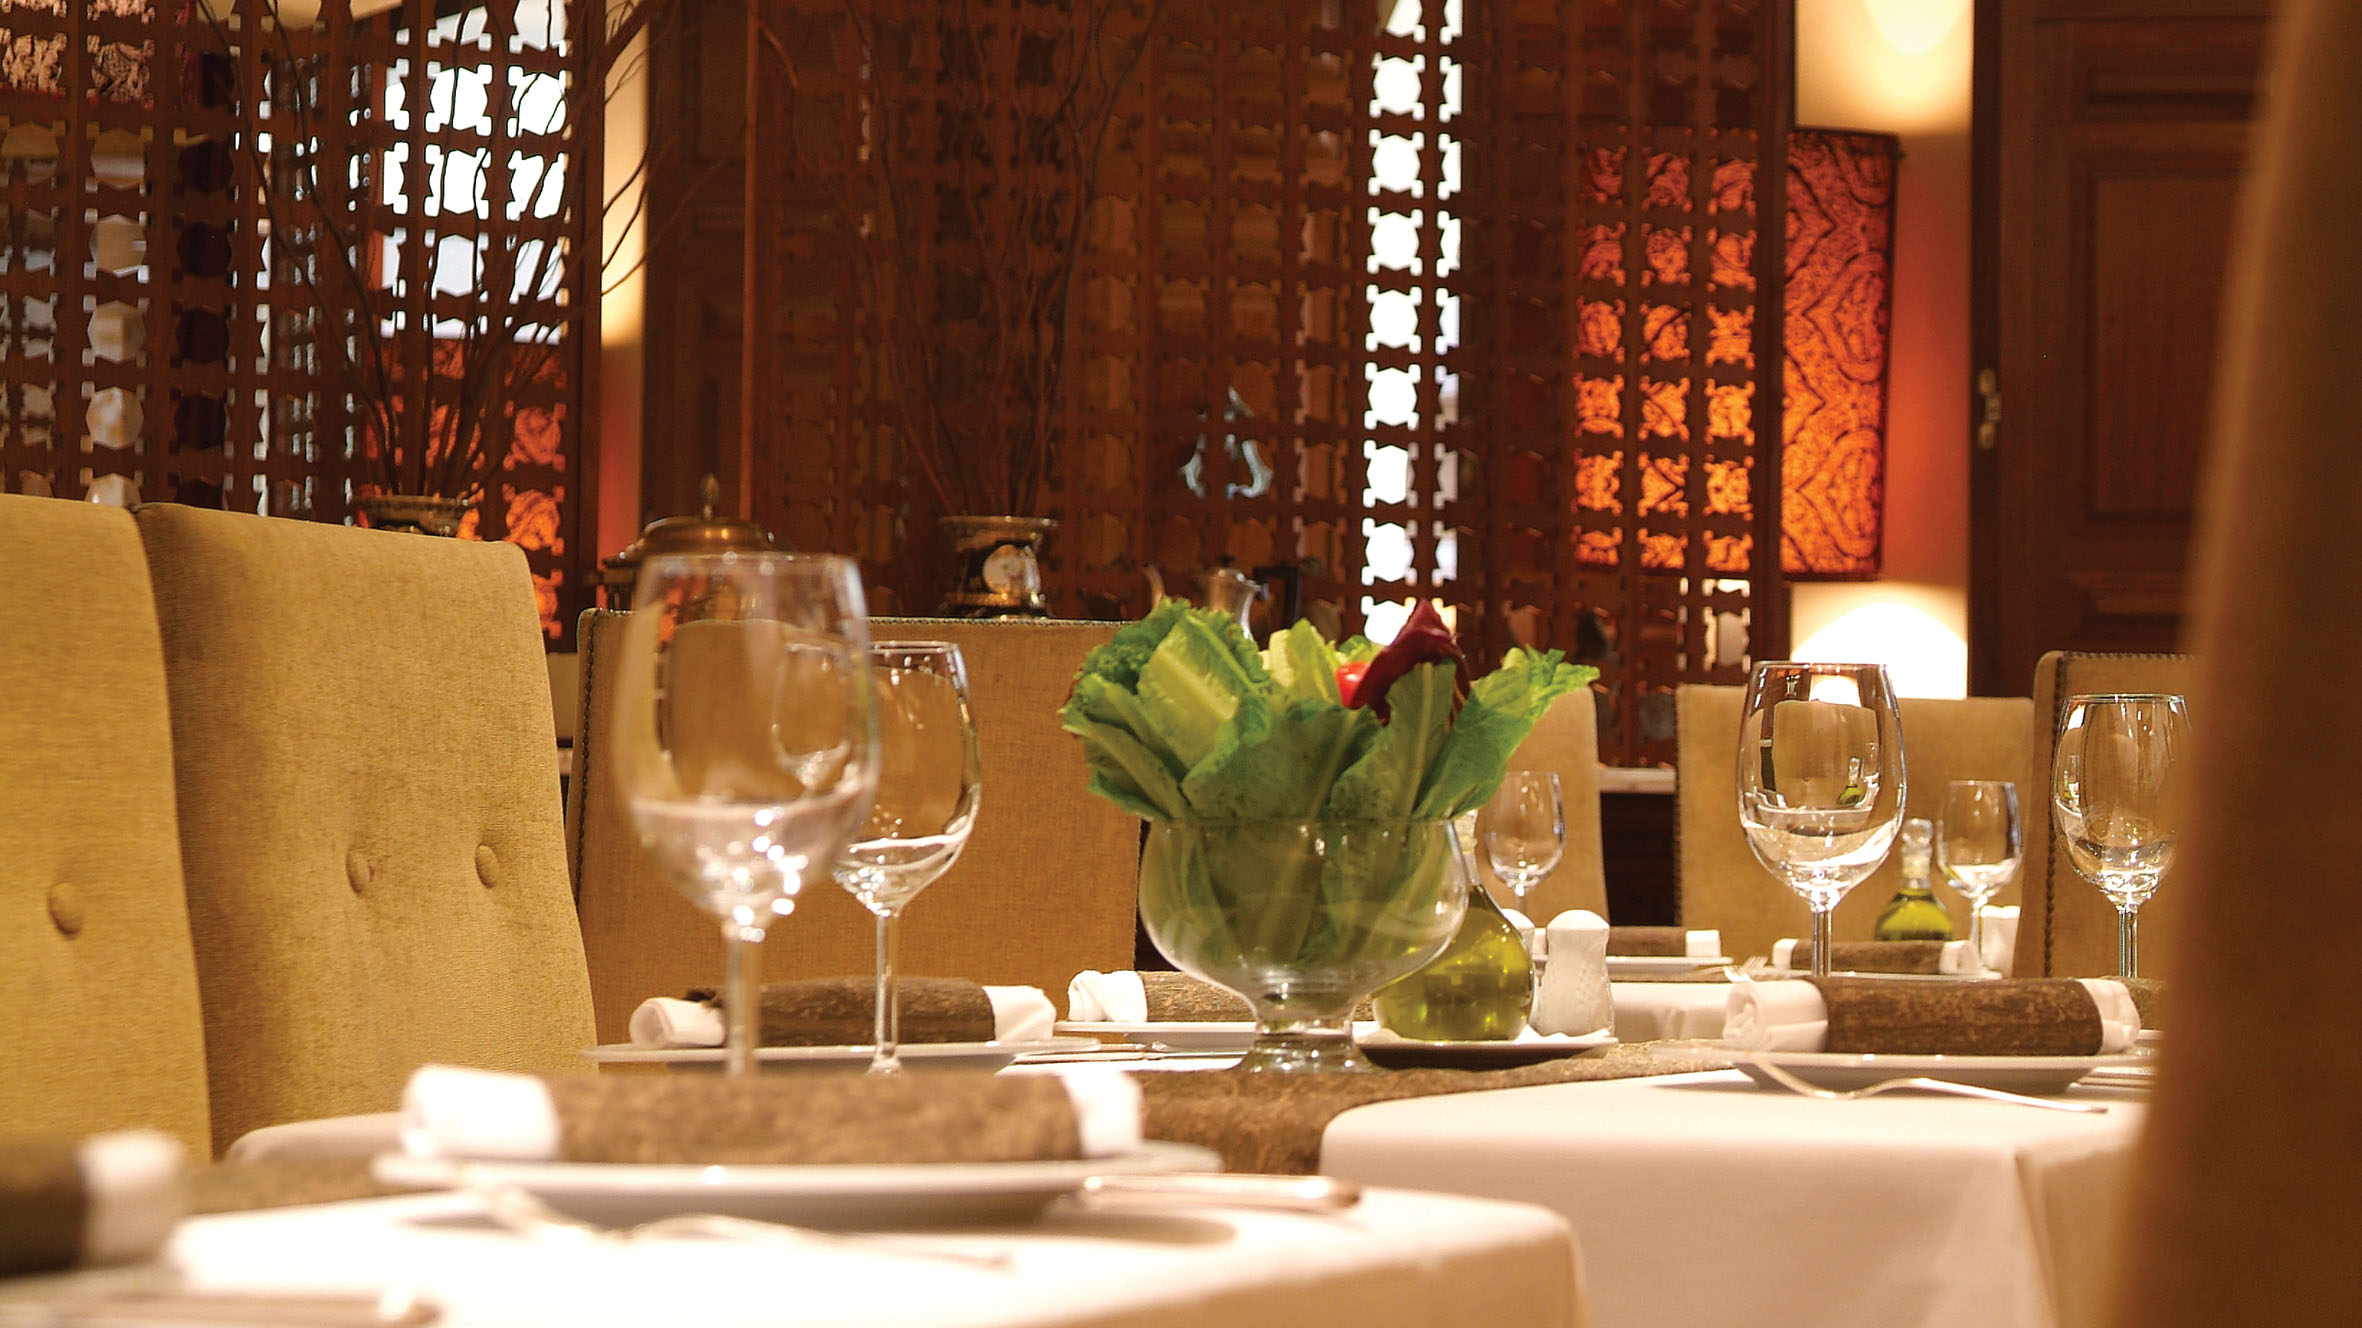 Sabaya at Semiramis Hotel lends an air of sophistication to Lebanese dining (Photo from Semiramis Hotel)